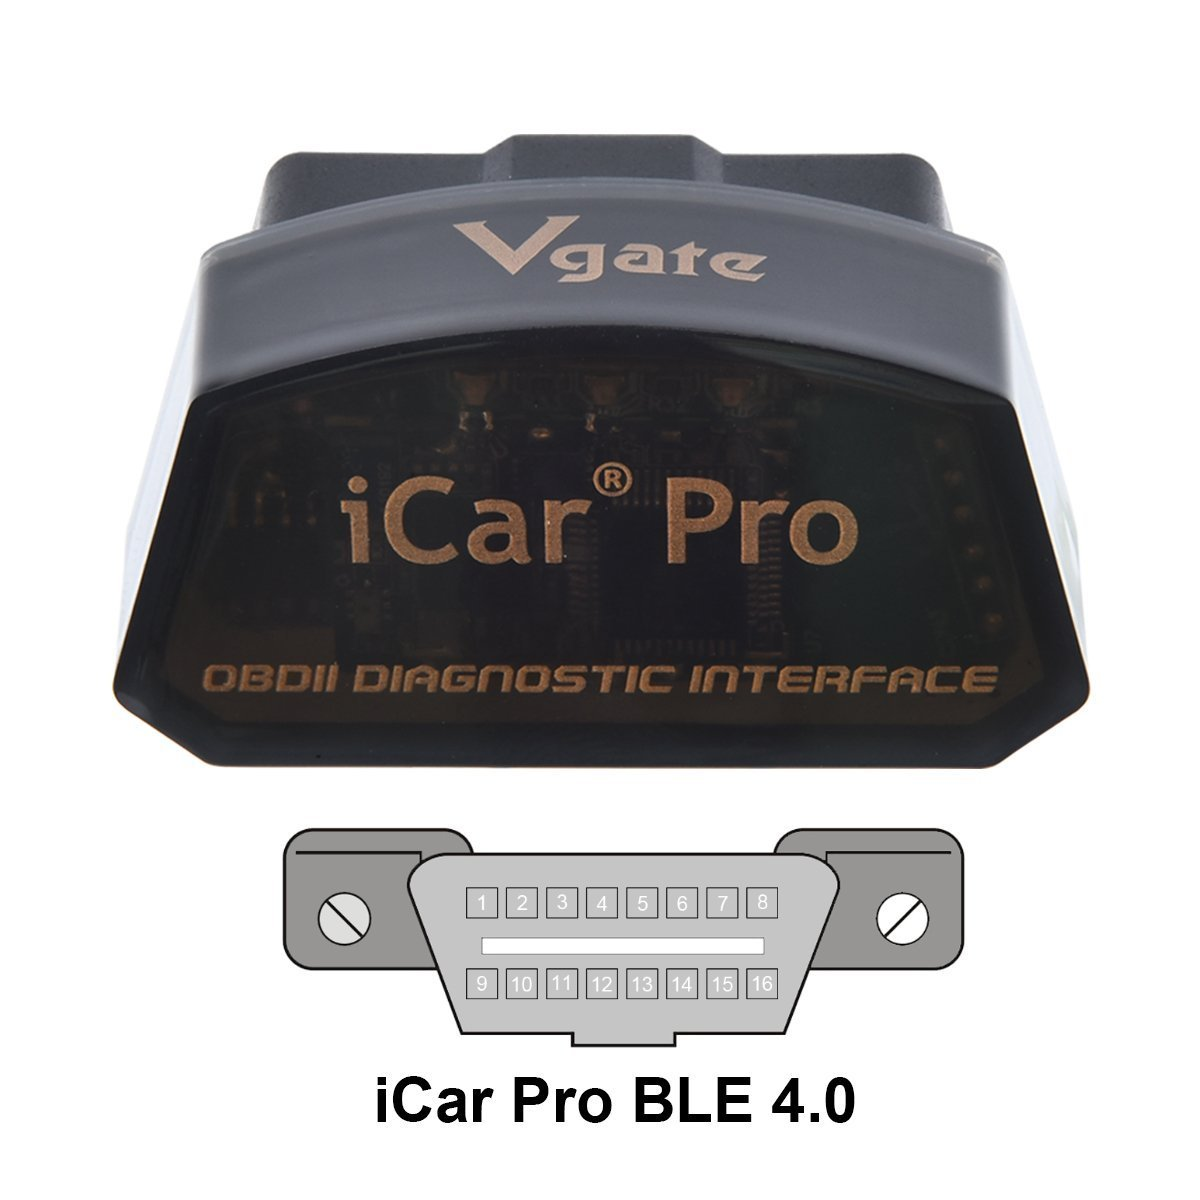 Vgate iCar Pro BLE 4.0 OBD2 Diagnostic Tool Fault Code Reader OBDII ELM327 Compatible Car Adapter Check Engine Light for iOS iPhone iPad//Android